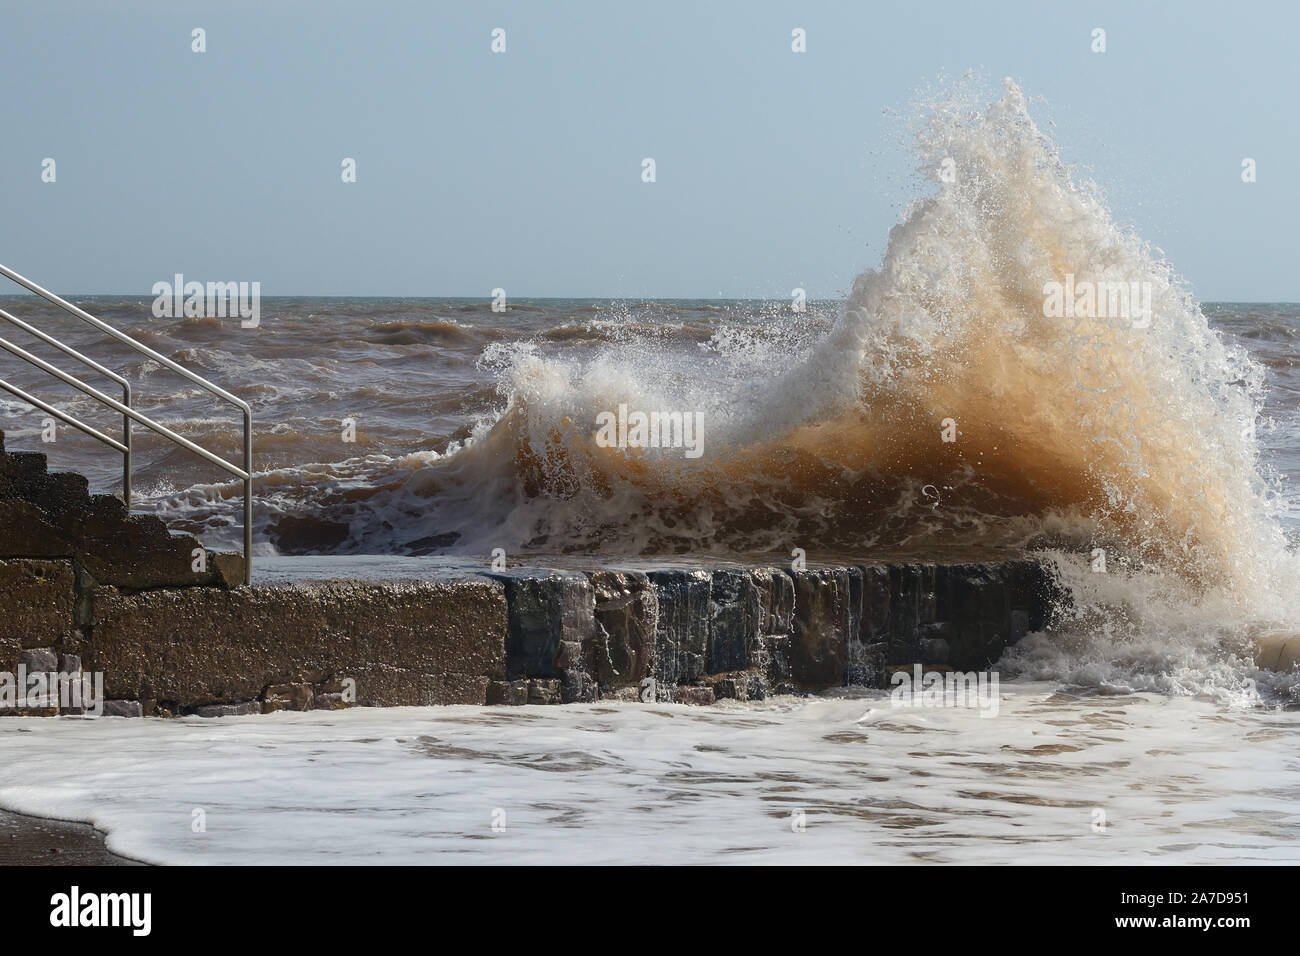 Waves crashing over a breakwater at Dawlish during high tide. Stock Photo